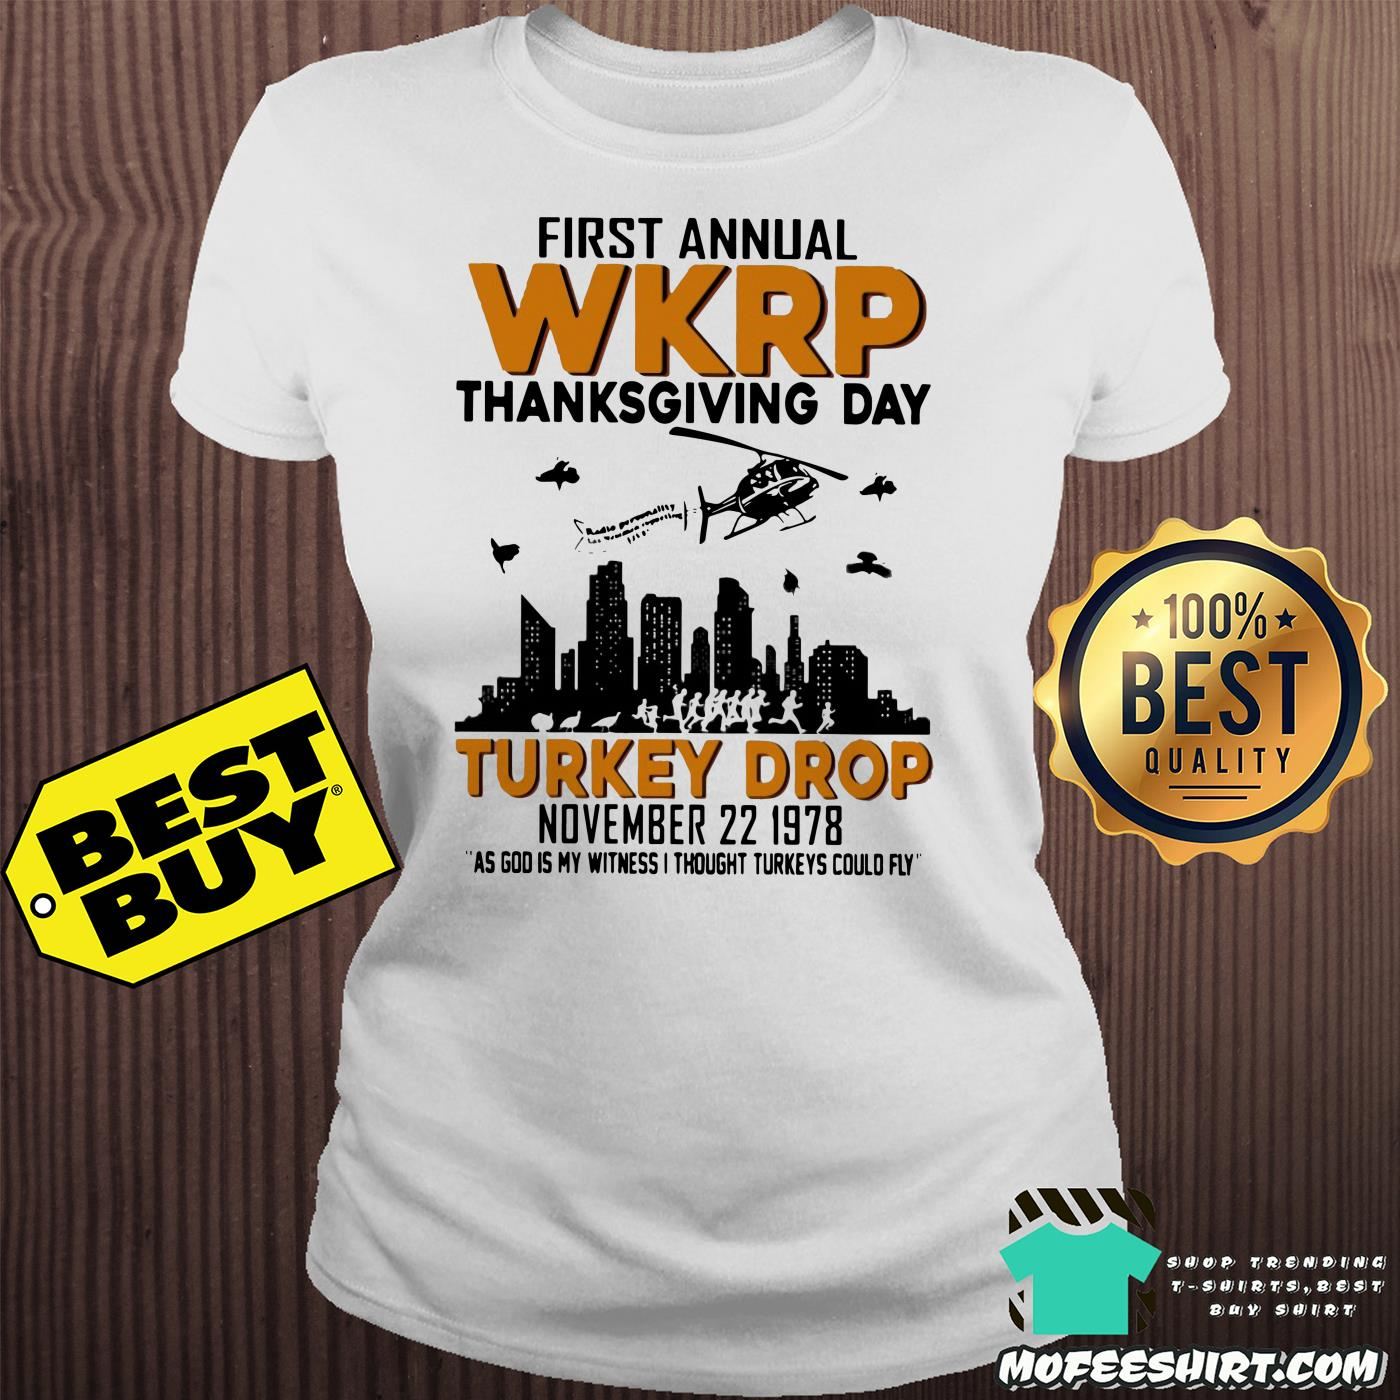 first annual wkrp thanksgiving day turkey drop november 22 1978 ladies tee - First Annual Wkrp Thanksgiving Day Turkey Drop November 22 1978 Shirt